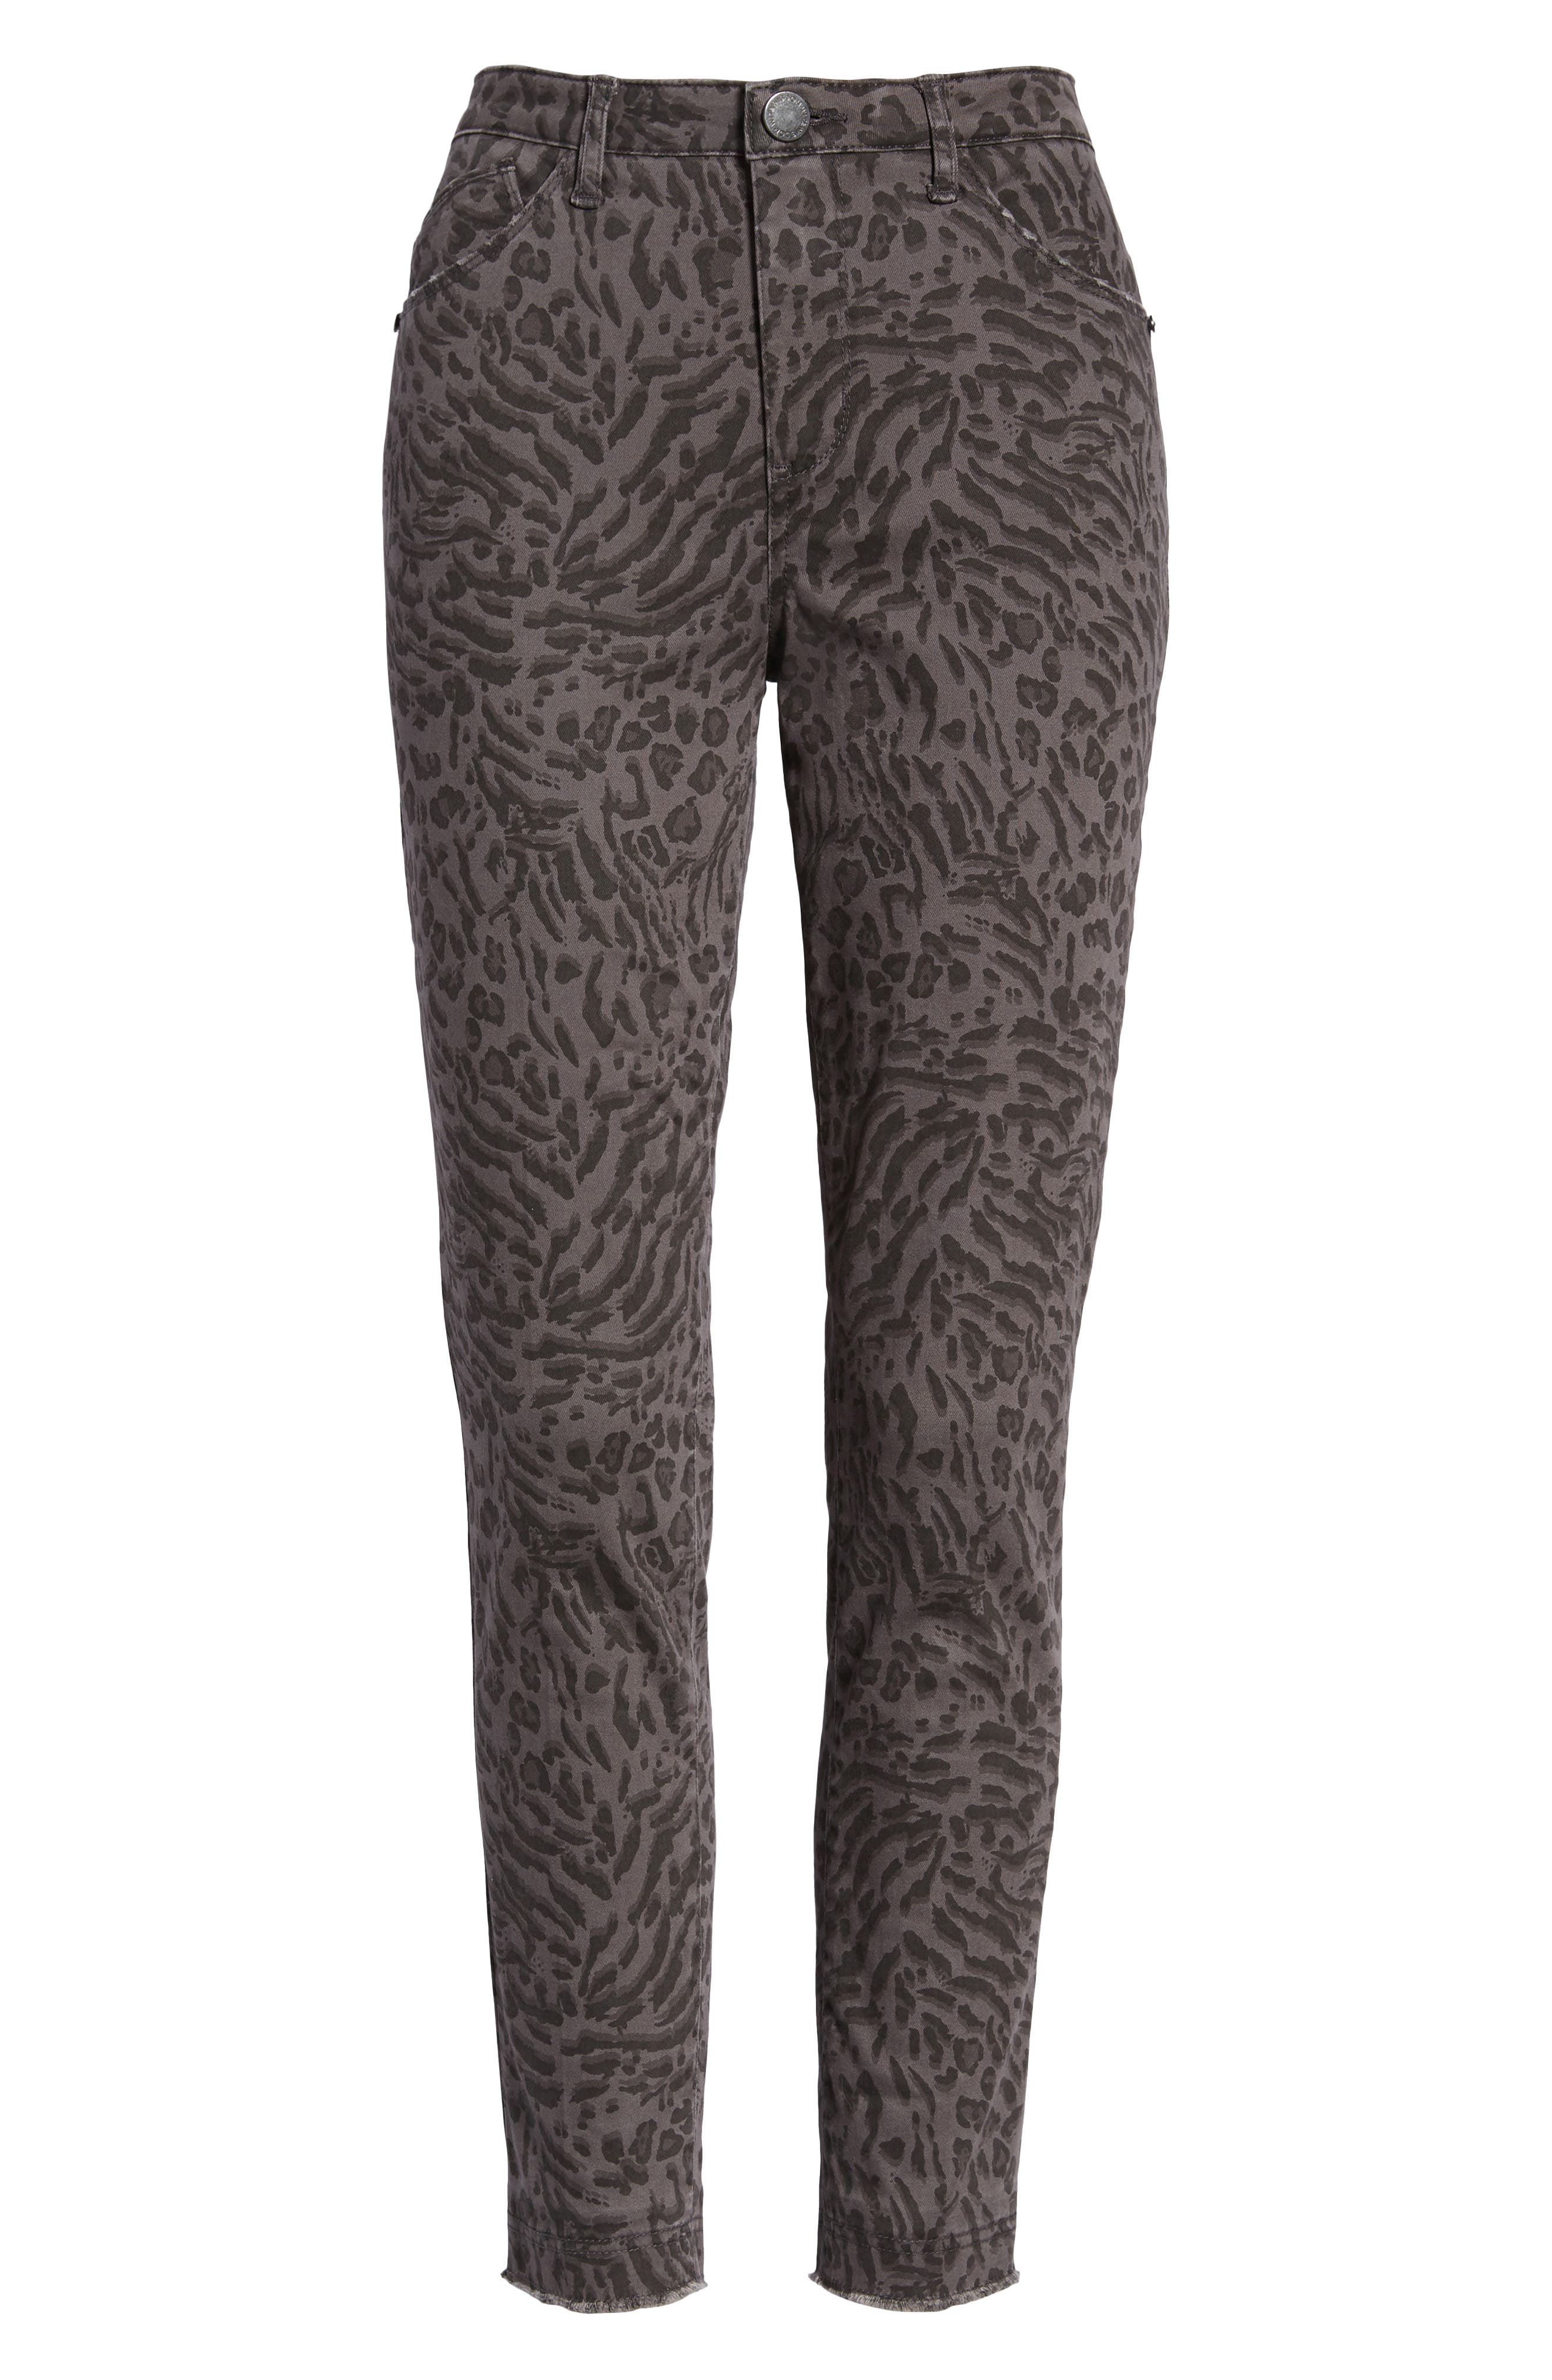 WIT & WISDOM, Ab-Solution Leopard Print High Waist Skinny Jeans, Alternate thumbnail 7, color, CHARCOAL